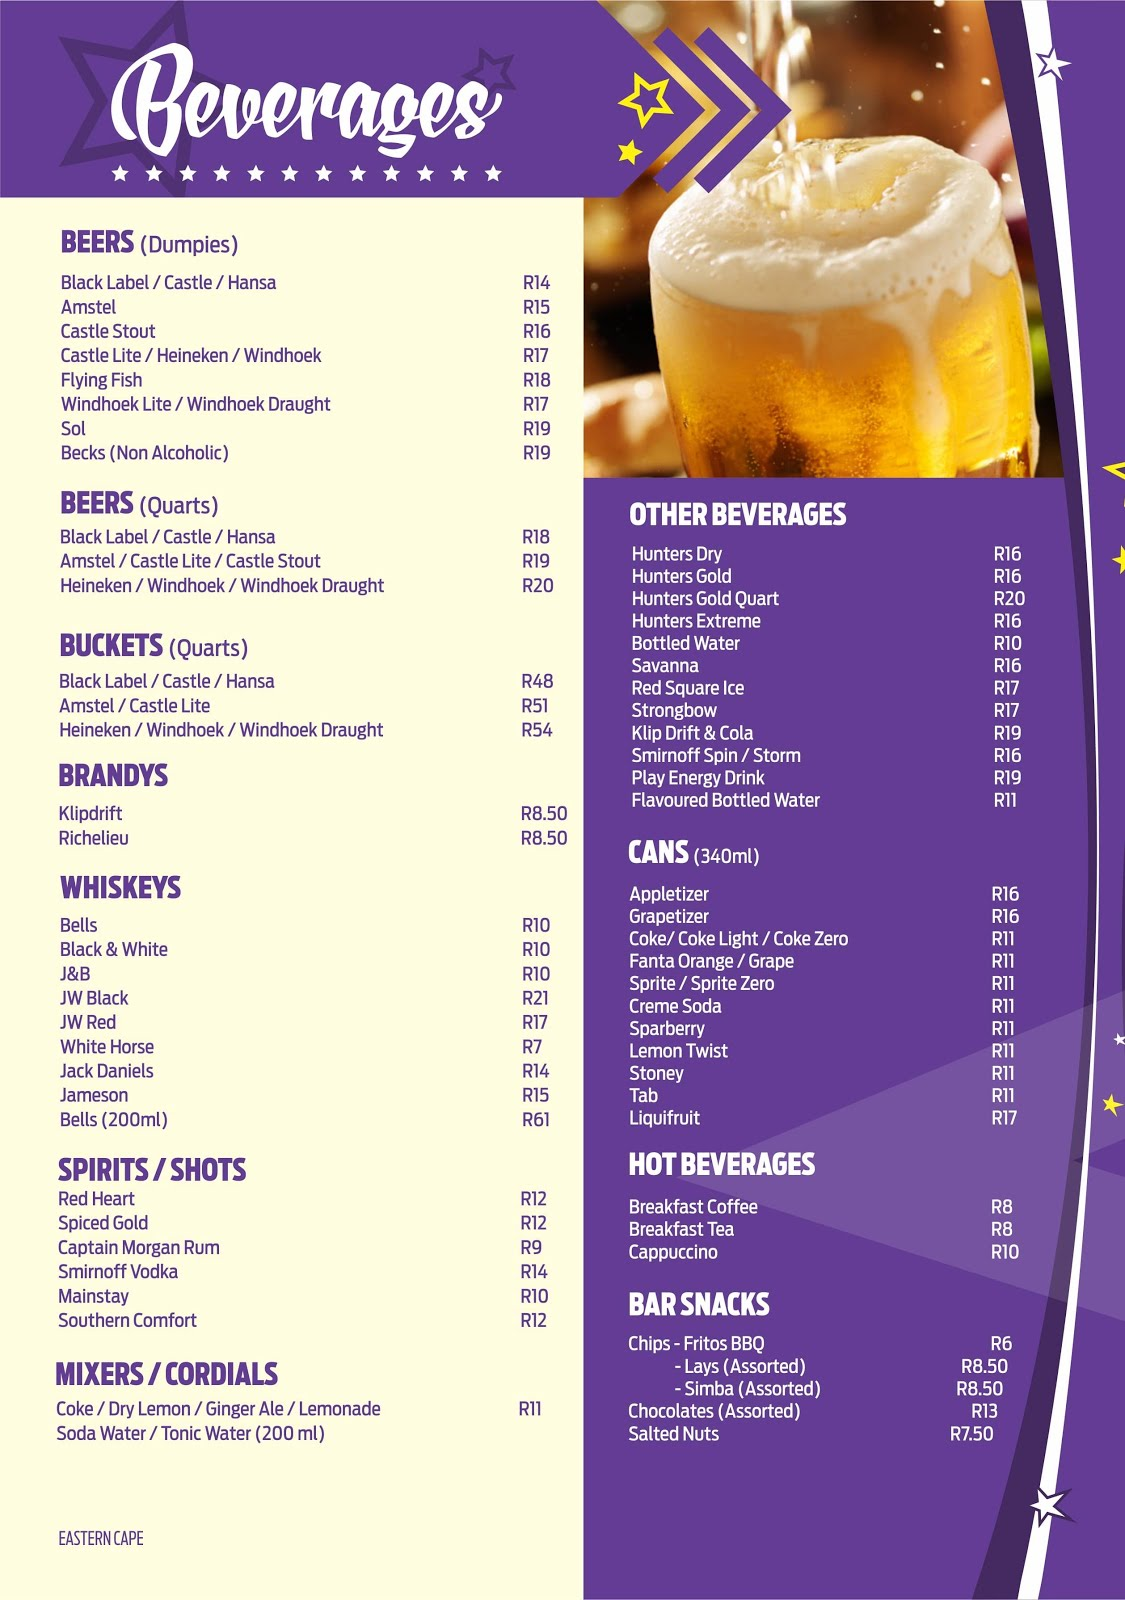 Hollywoodbets Newton Park Menu - Beverages, Drinks, Beers, Spritis, Liquor